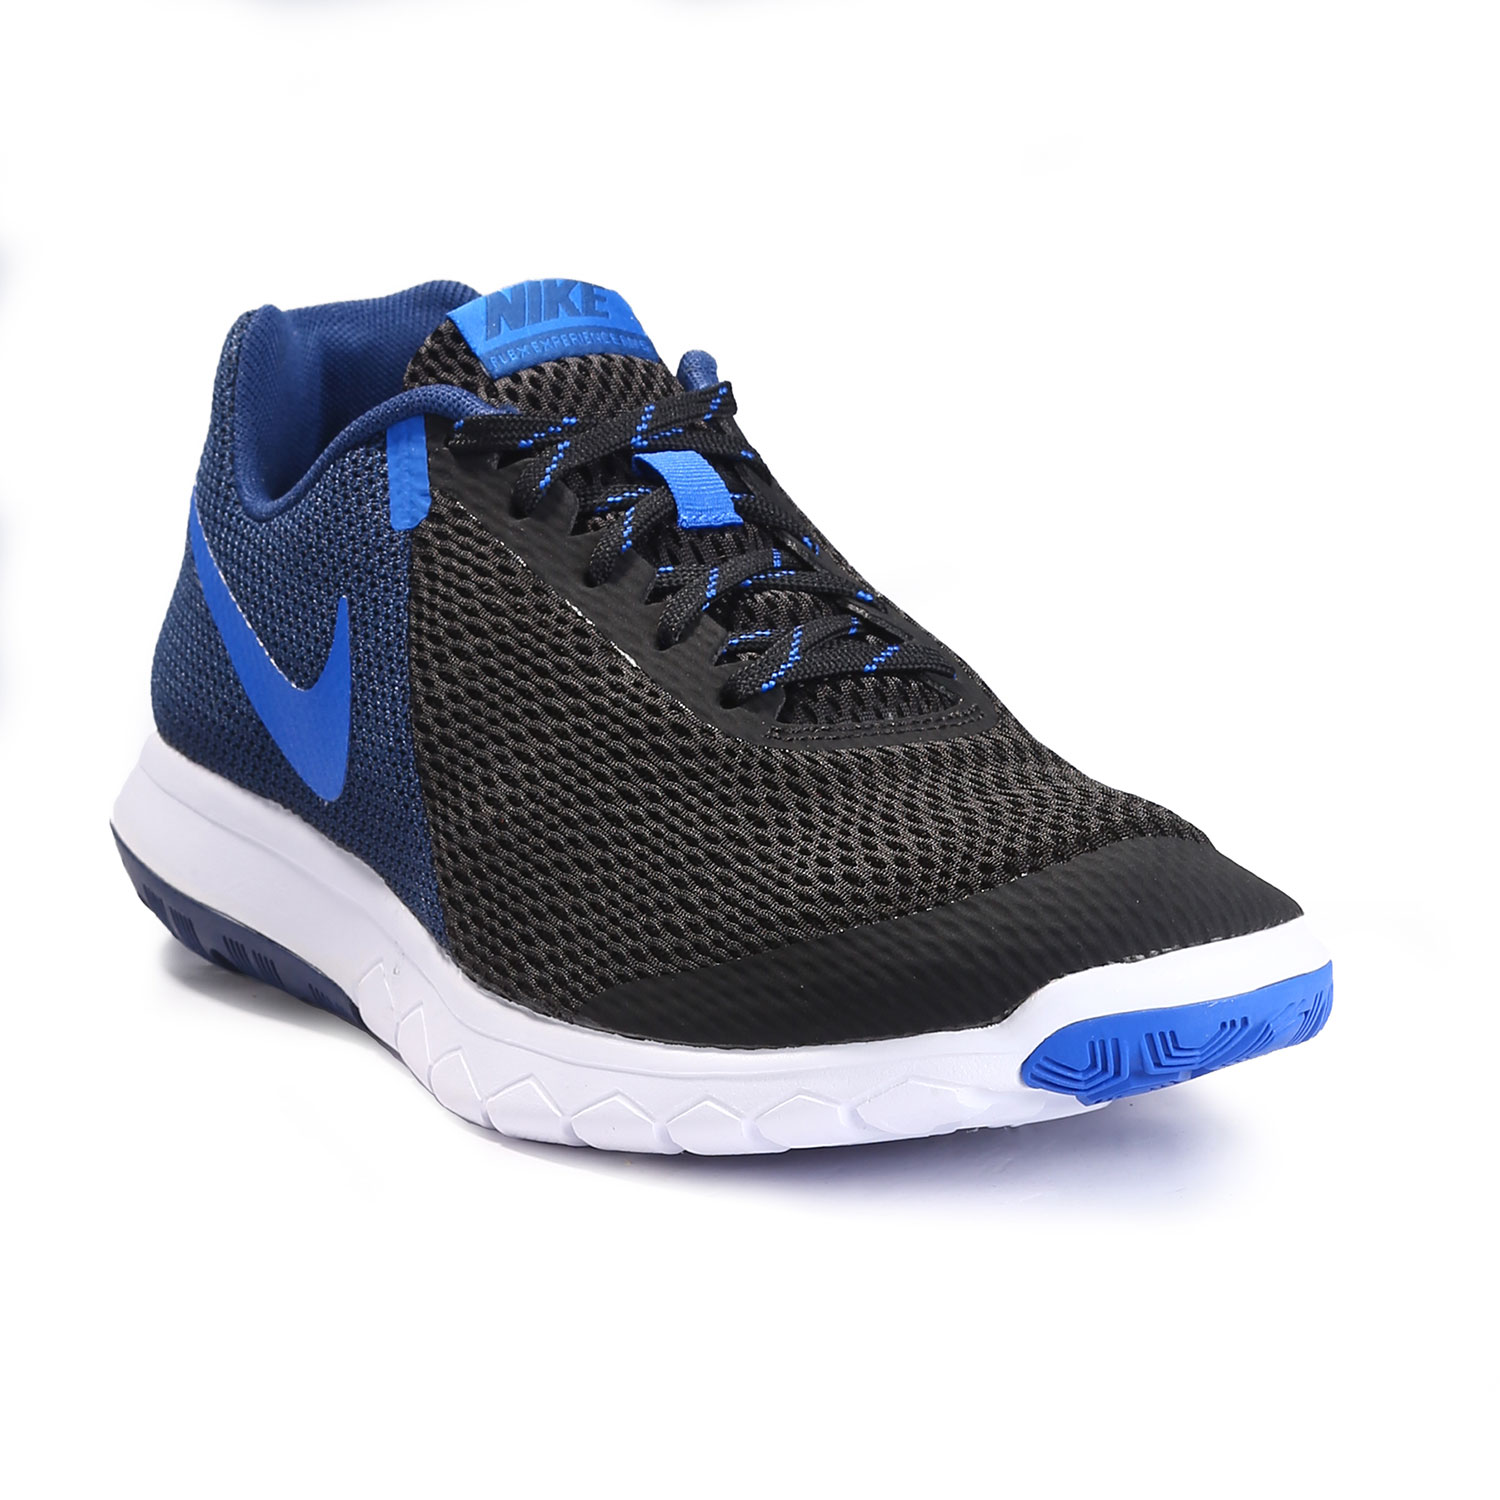 Nike Mens Flex Experience Rn 5 Running Shoe